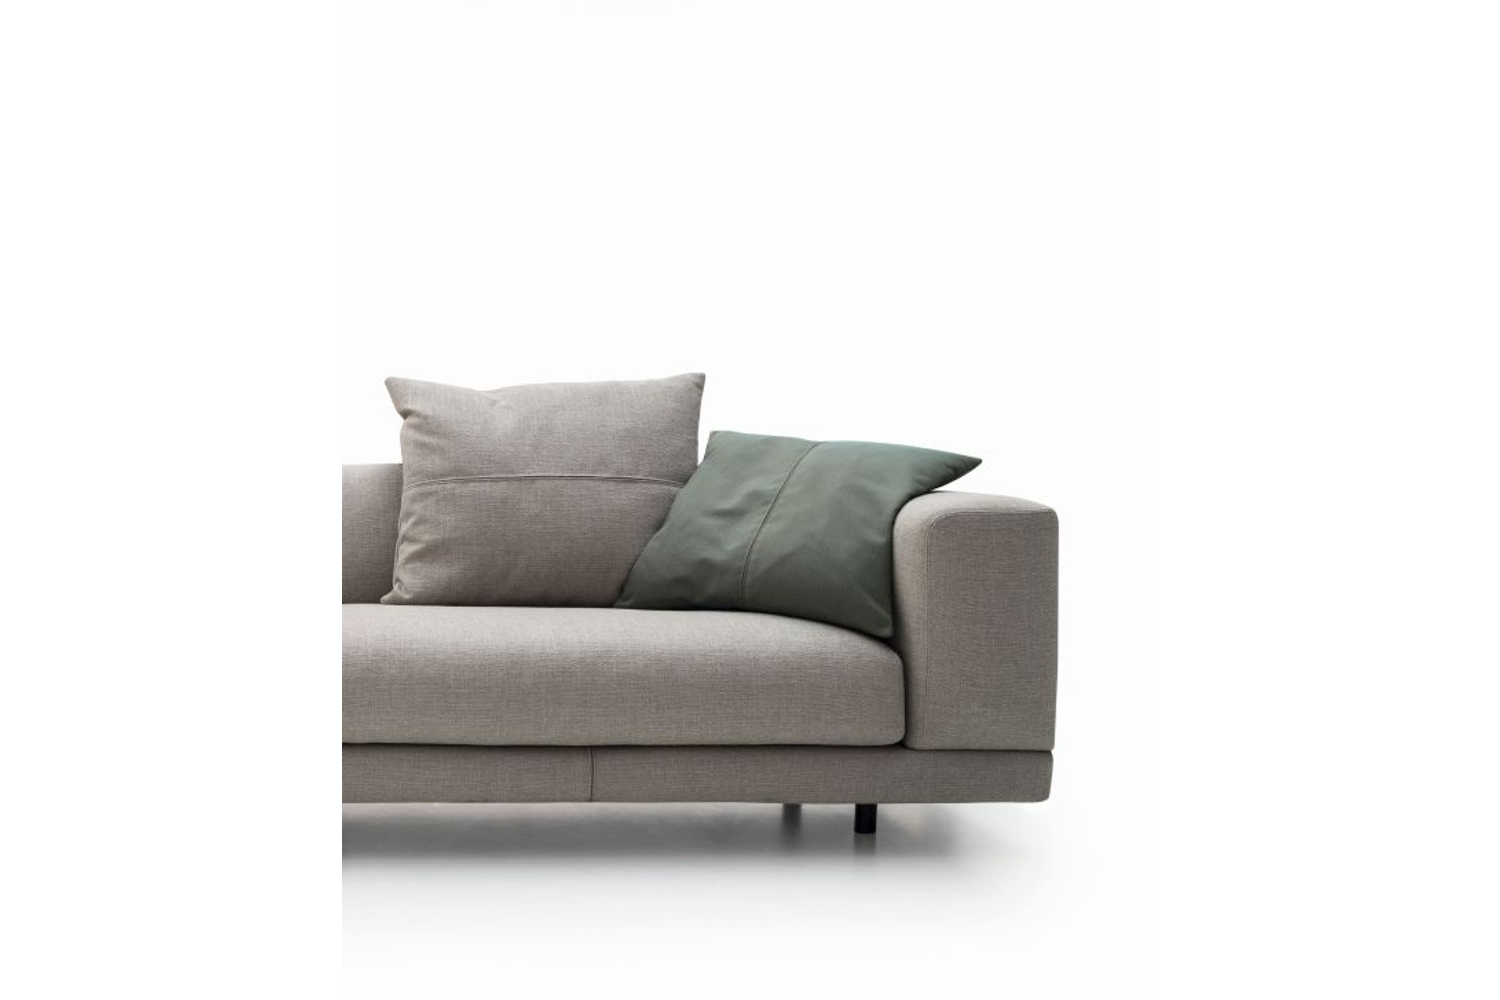 Nevill low bracciolo.jpg Nevyll sofa_Made by Ditre Italia_In Italy_Low back and High back options_ Fabric and Leather Upholstery Nevill low bracciolo.jpg